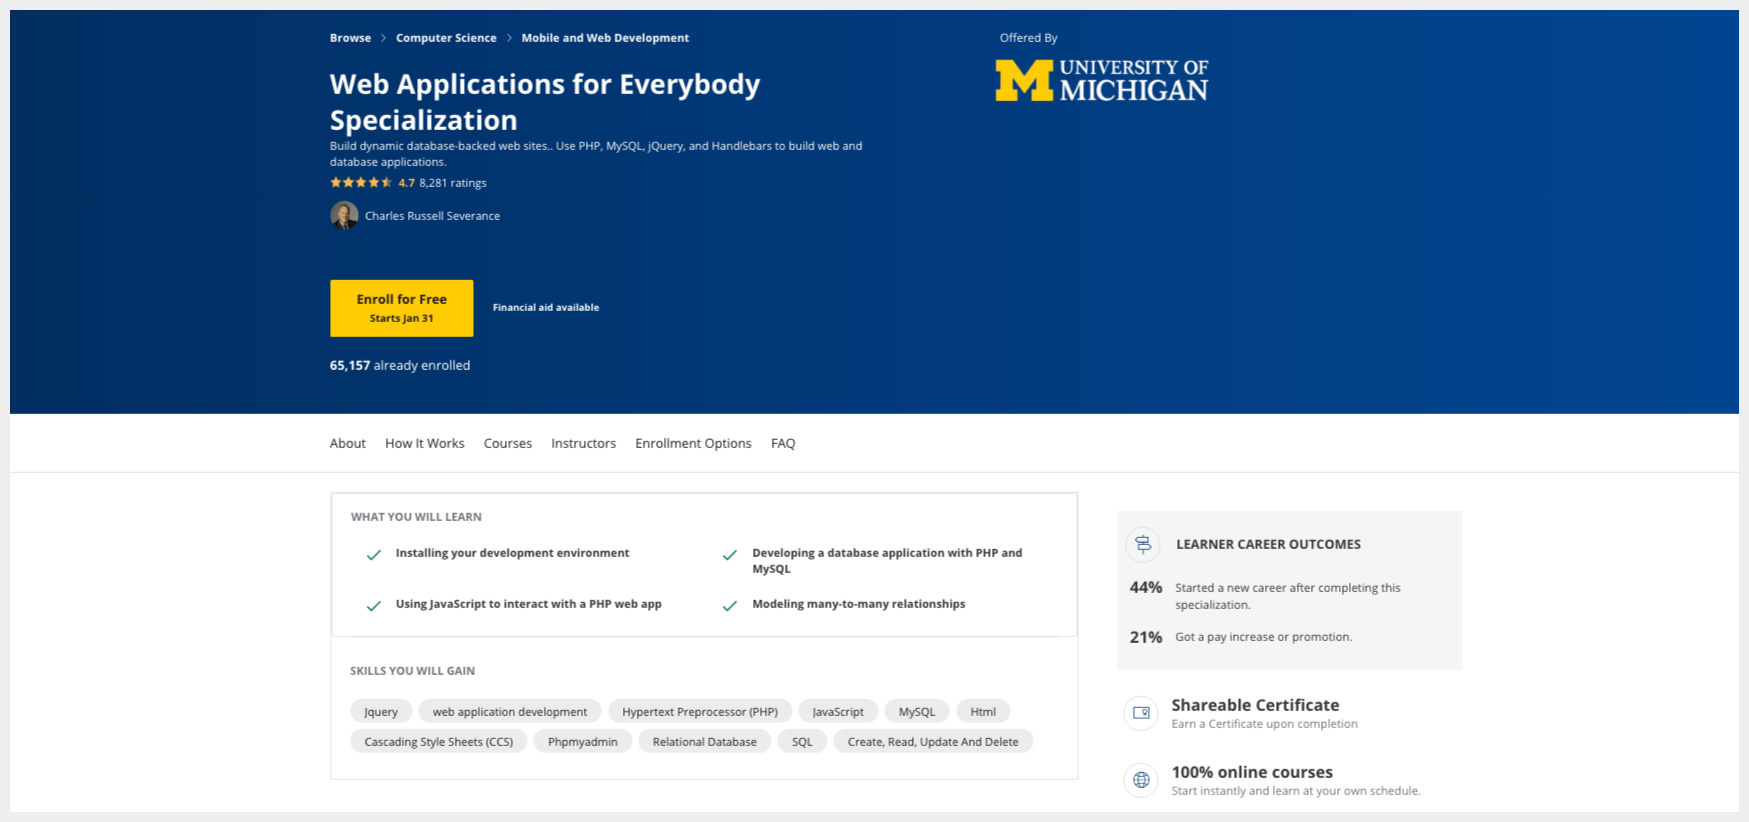 Web Applications for Everybody Specialization – University of Michigan – Coursera